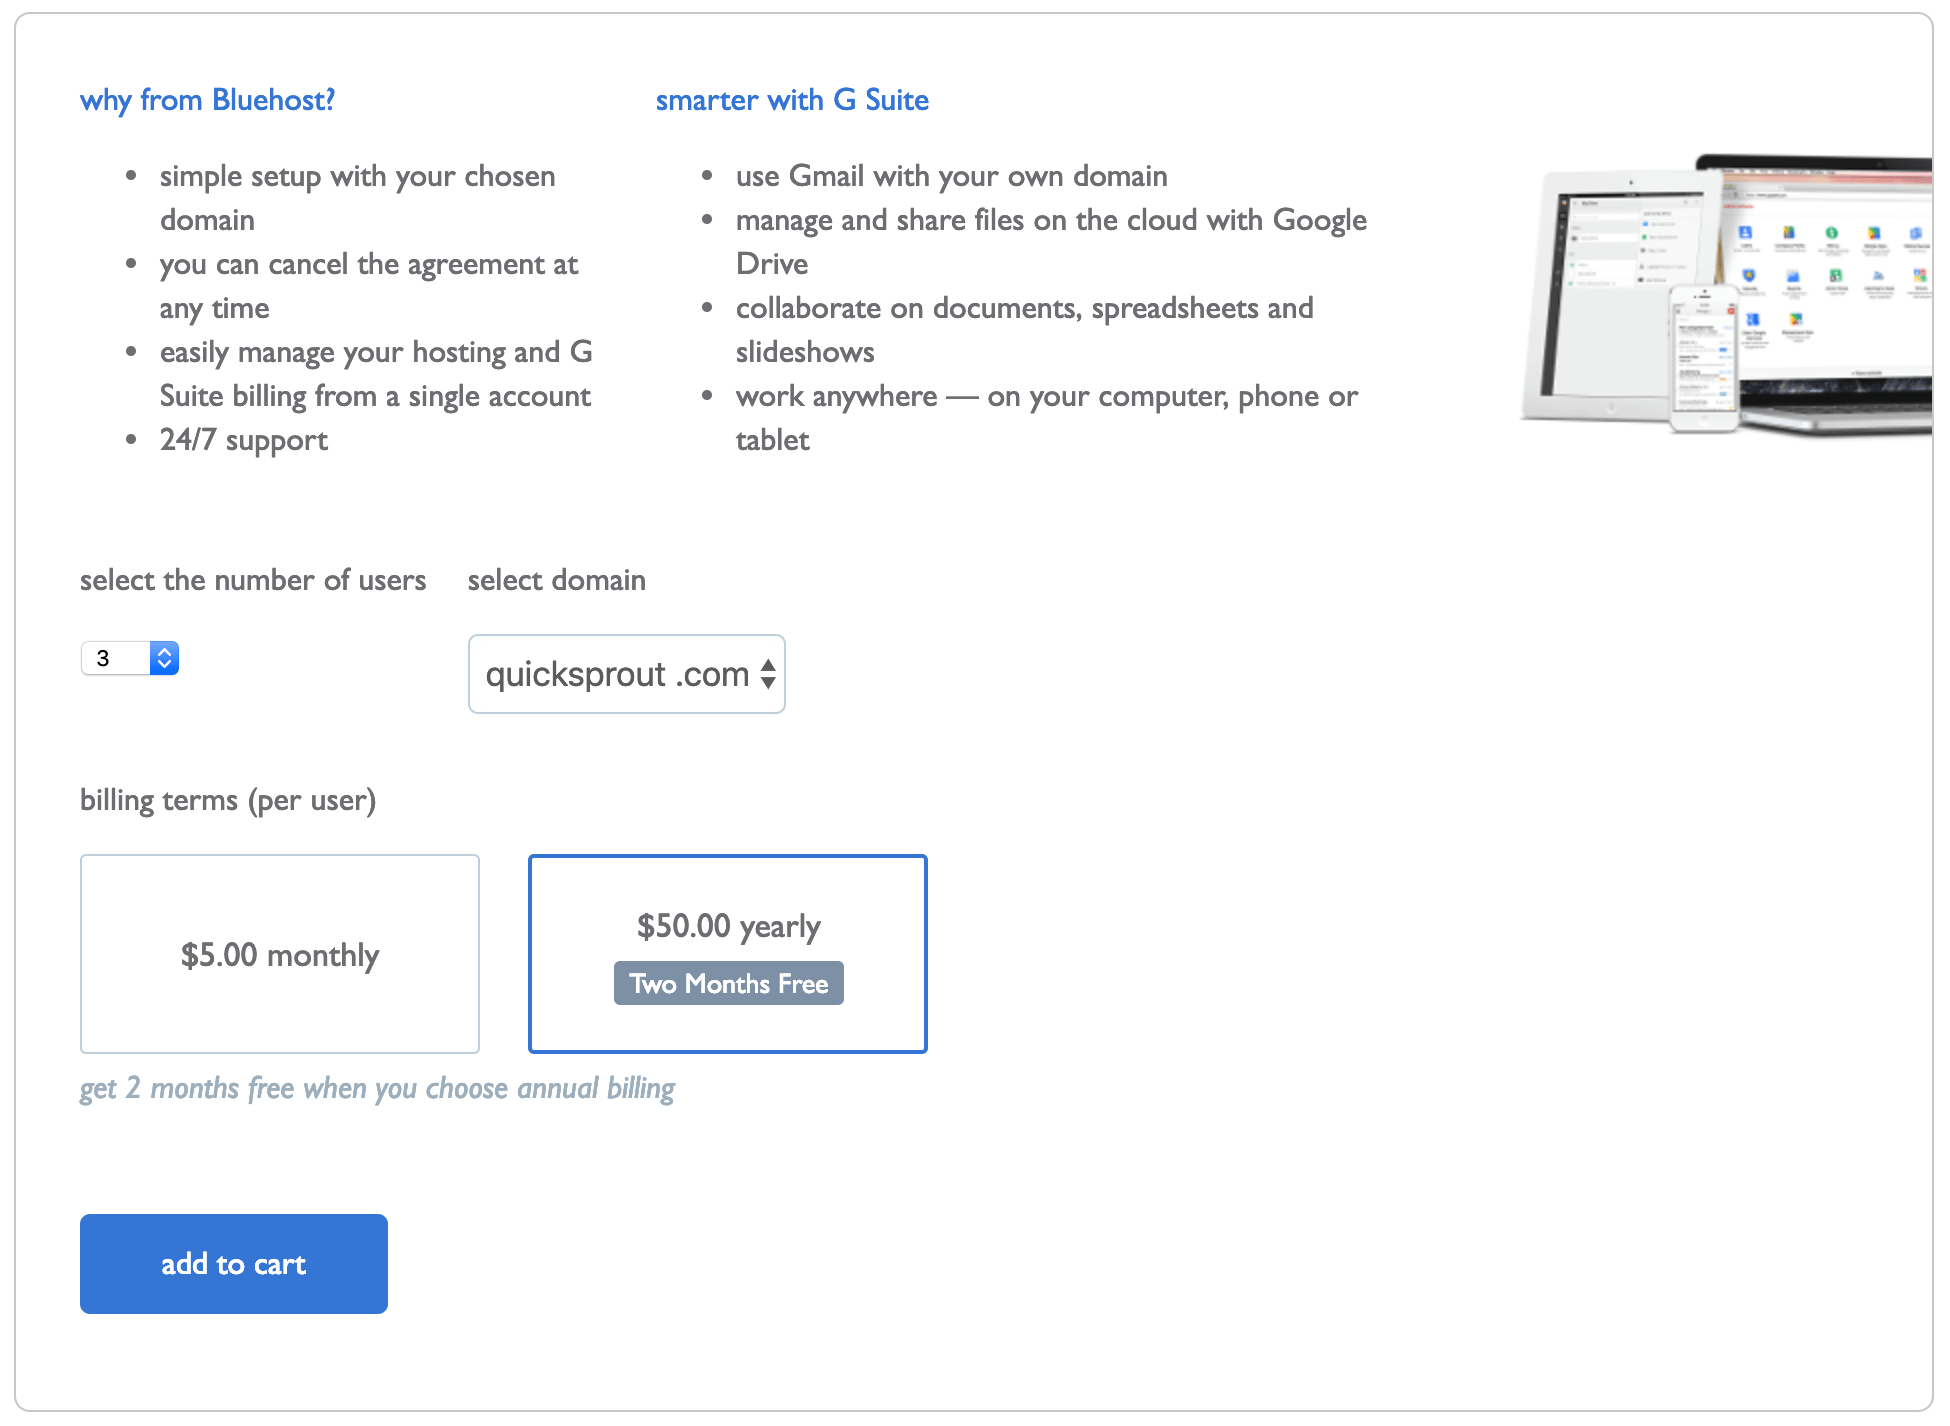 G Suite Pricing - Bluehost Annual Plan